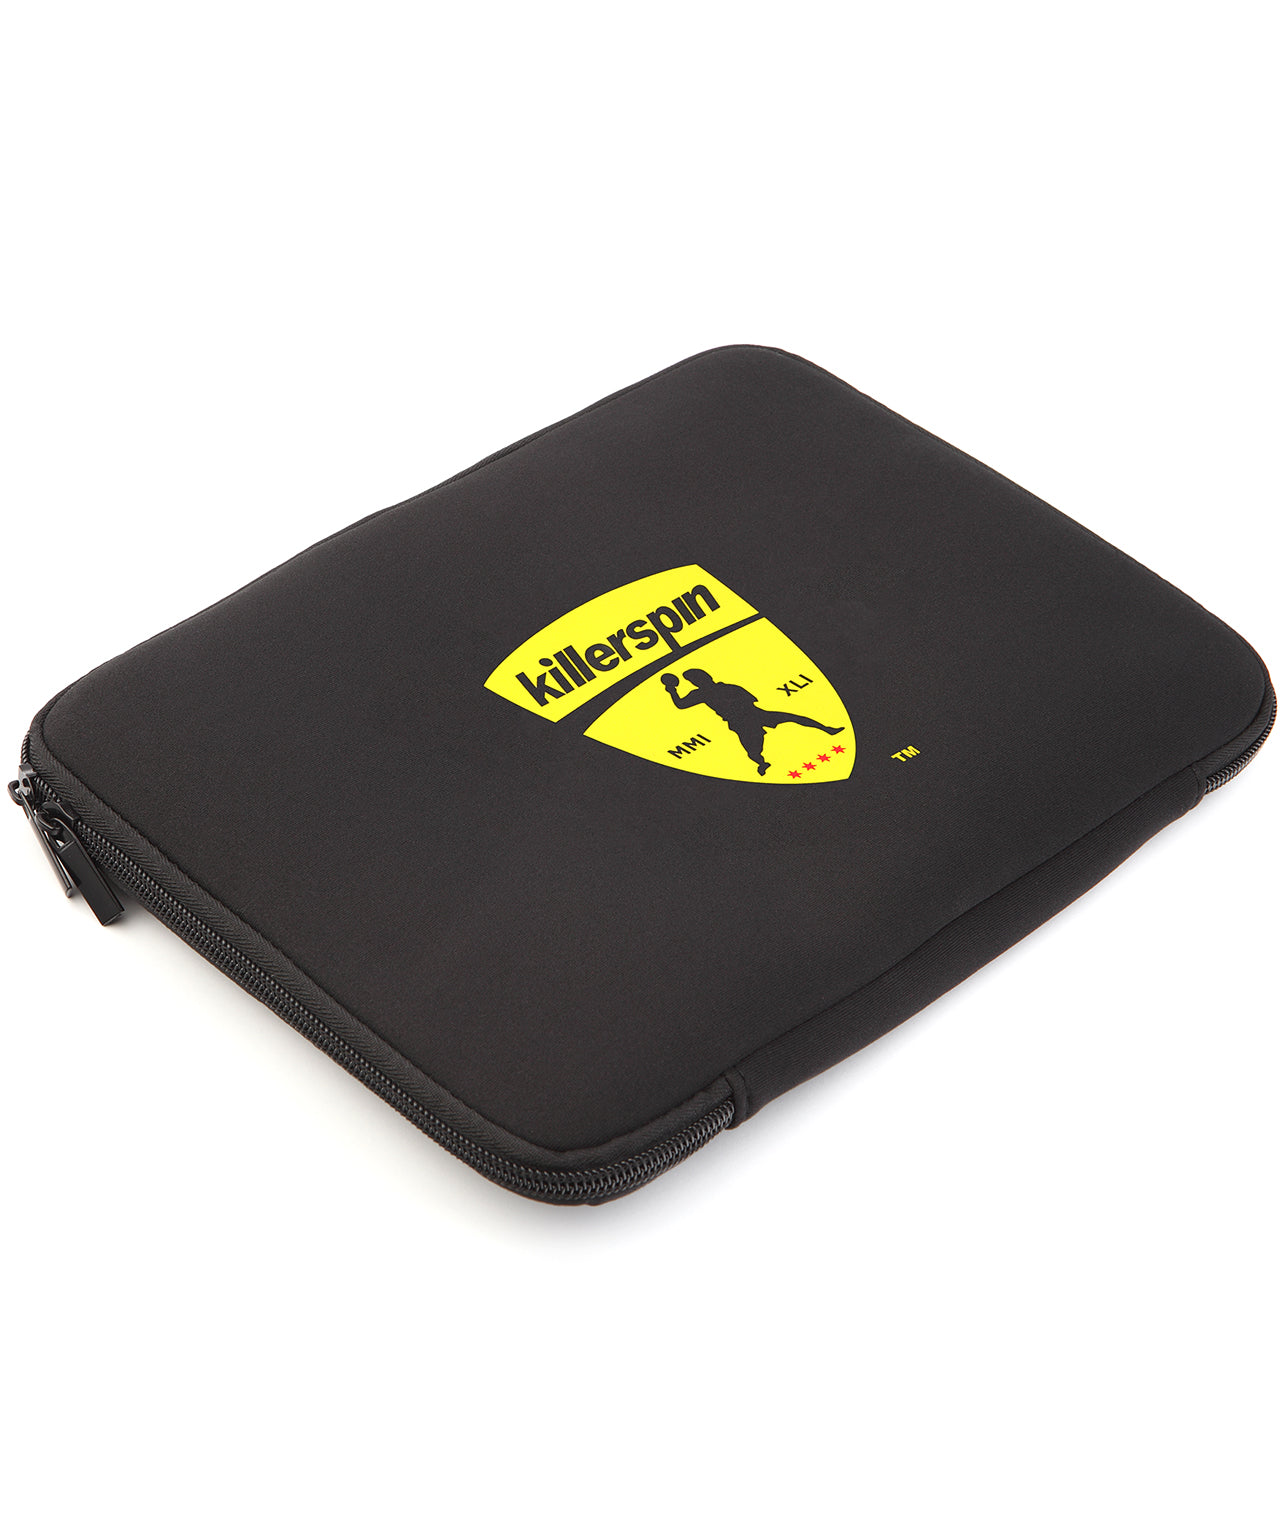 Killerspin Jet Black Combo Ping Pong Paddle Case - Logo